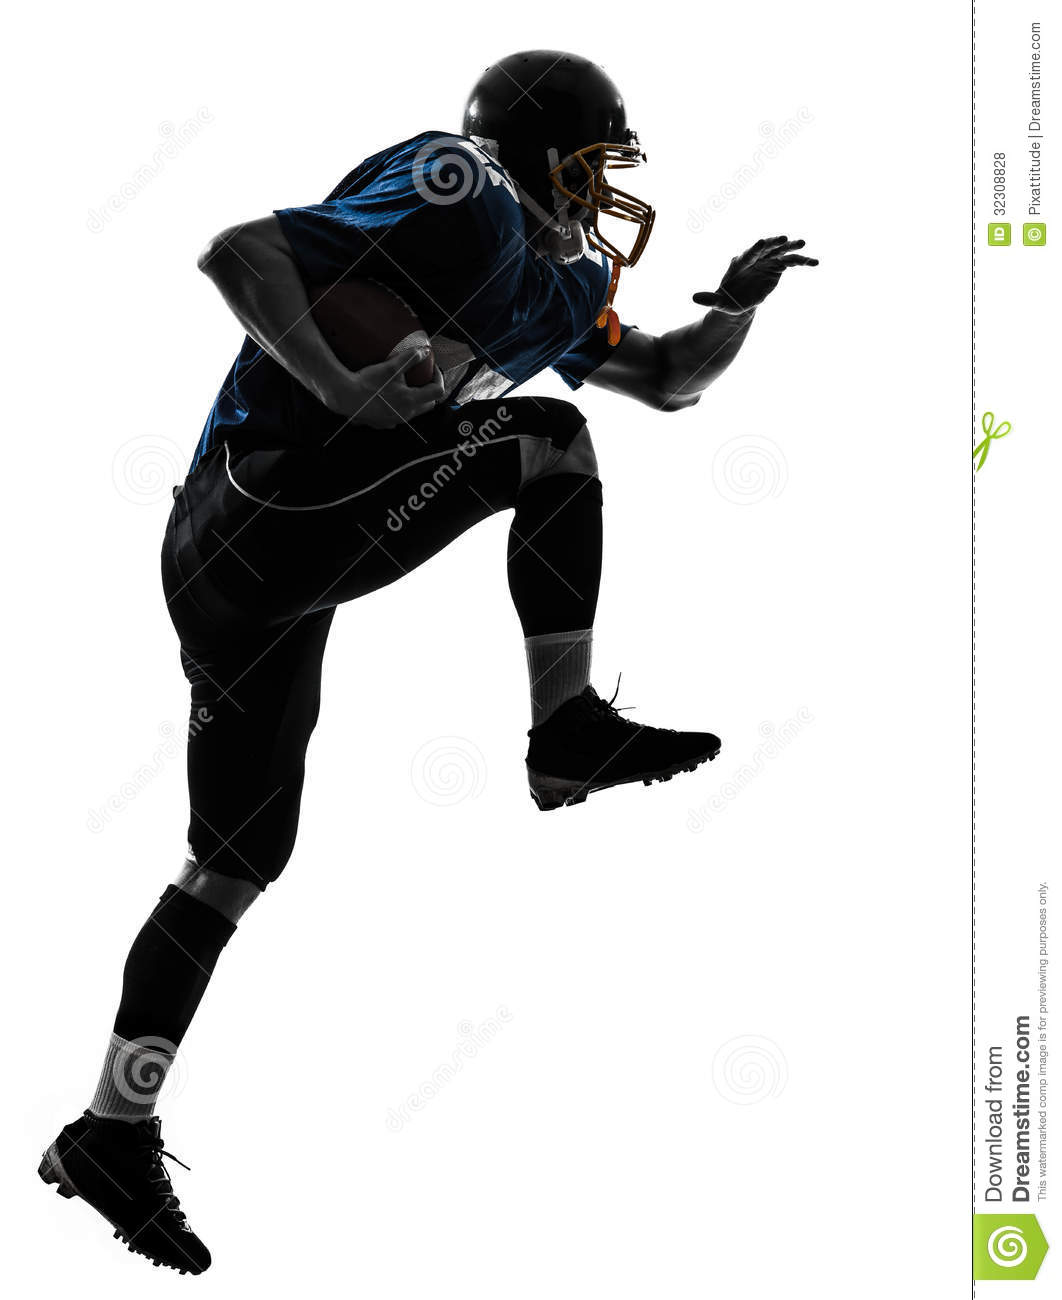 Running Football Player Png - American football player man running silhouette